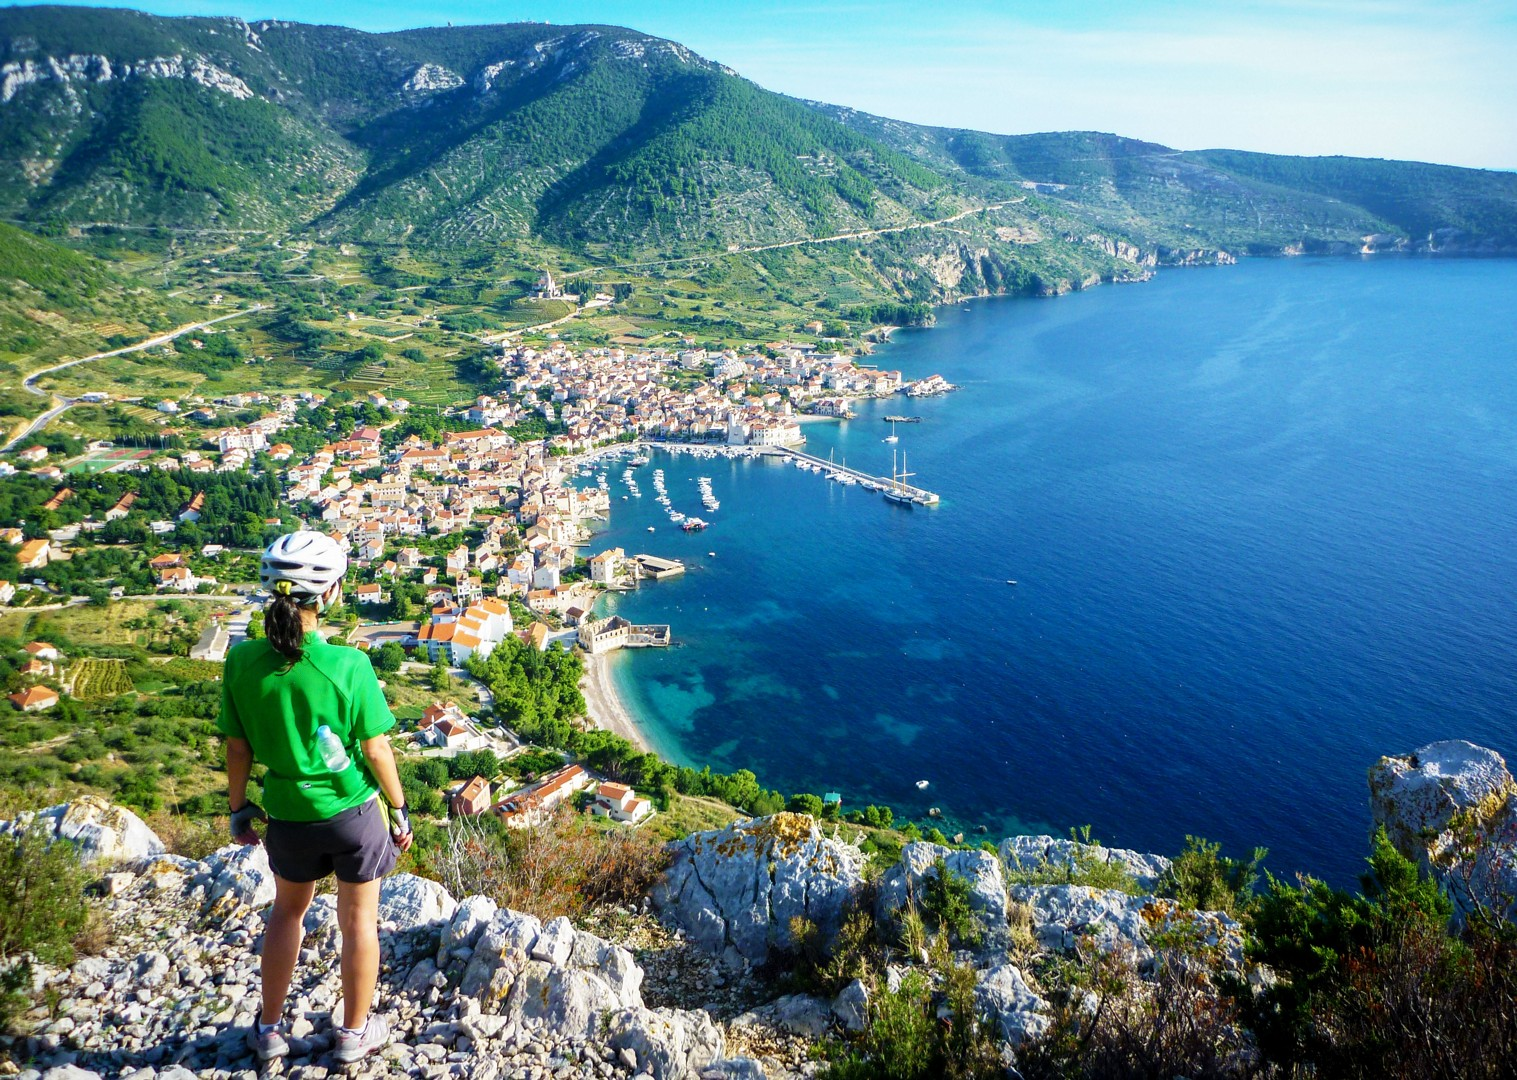 cycle-past-adriatic-waters-southern-dalmatia.jpg - Croatia - Southern Dalmatia - Bike and Boat Holiday - Leisure Cycling